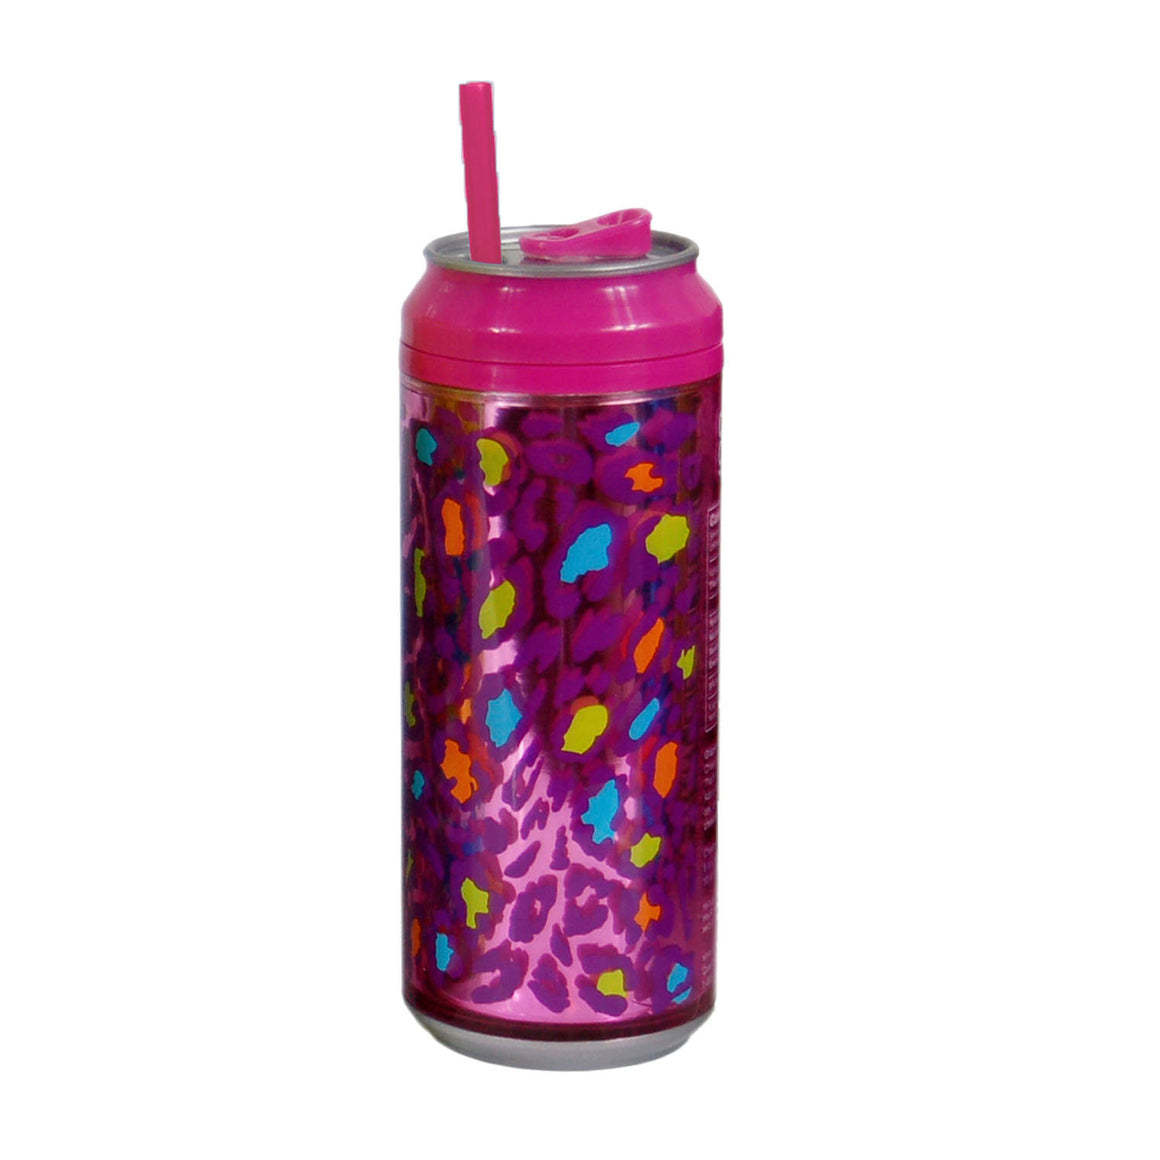 Pink / Flowers 16 Oz coolgearcan (With Straw) at Cool Gear Coolgearcans